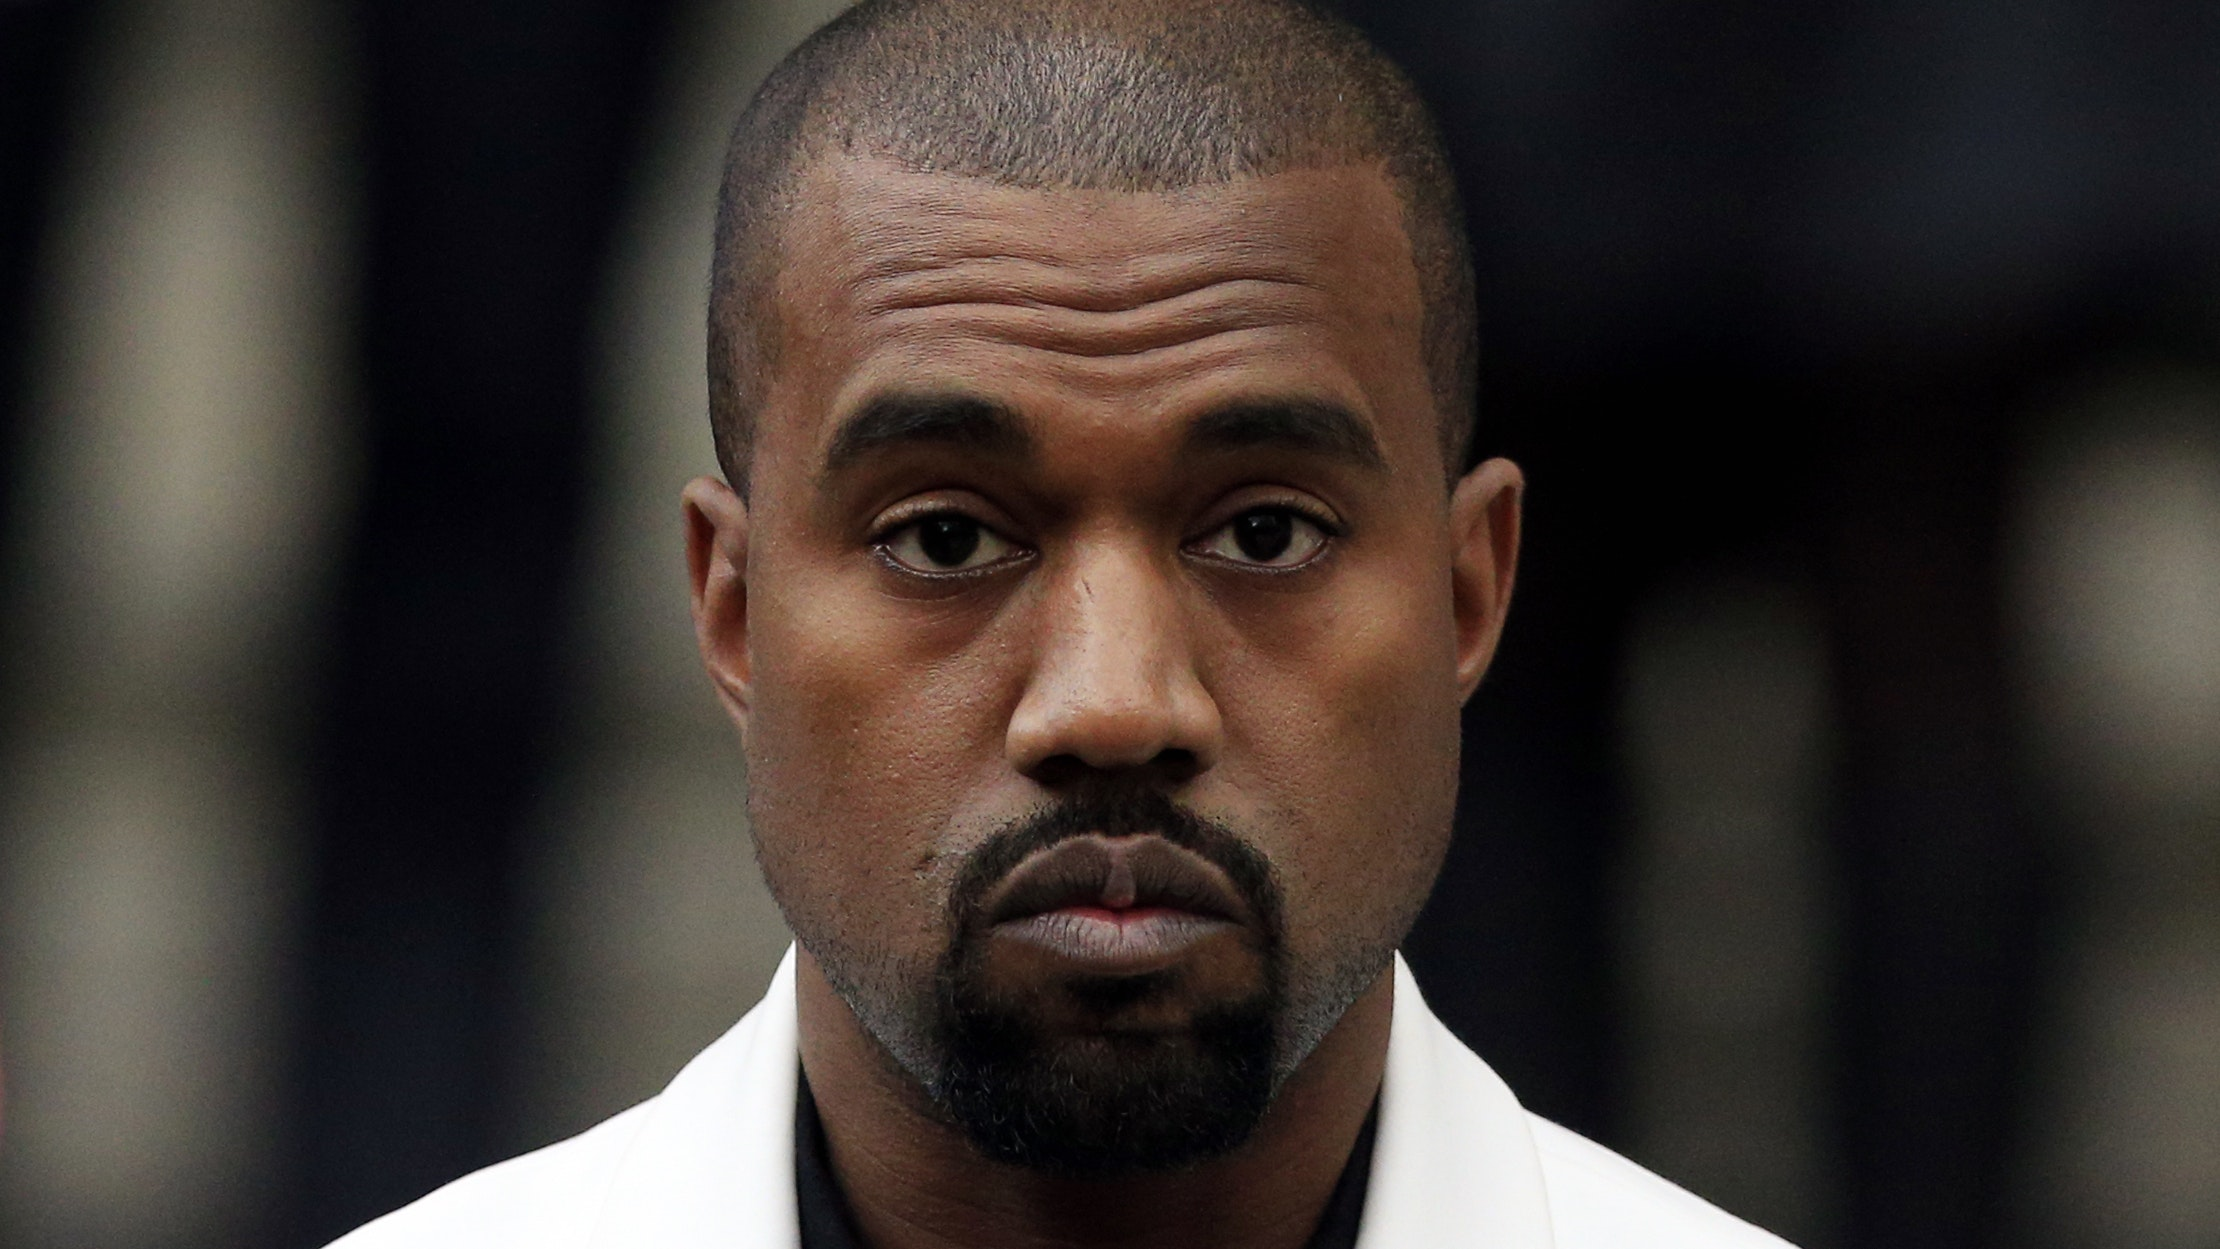 Kanye West Kicks Lloyd's of London's Ass ... In Cancelled Tour Lawsuit